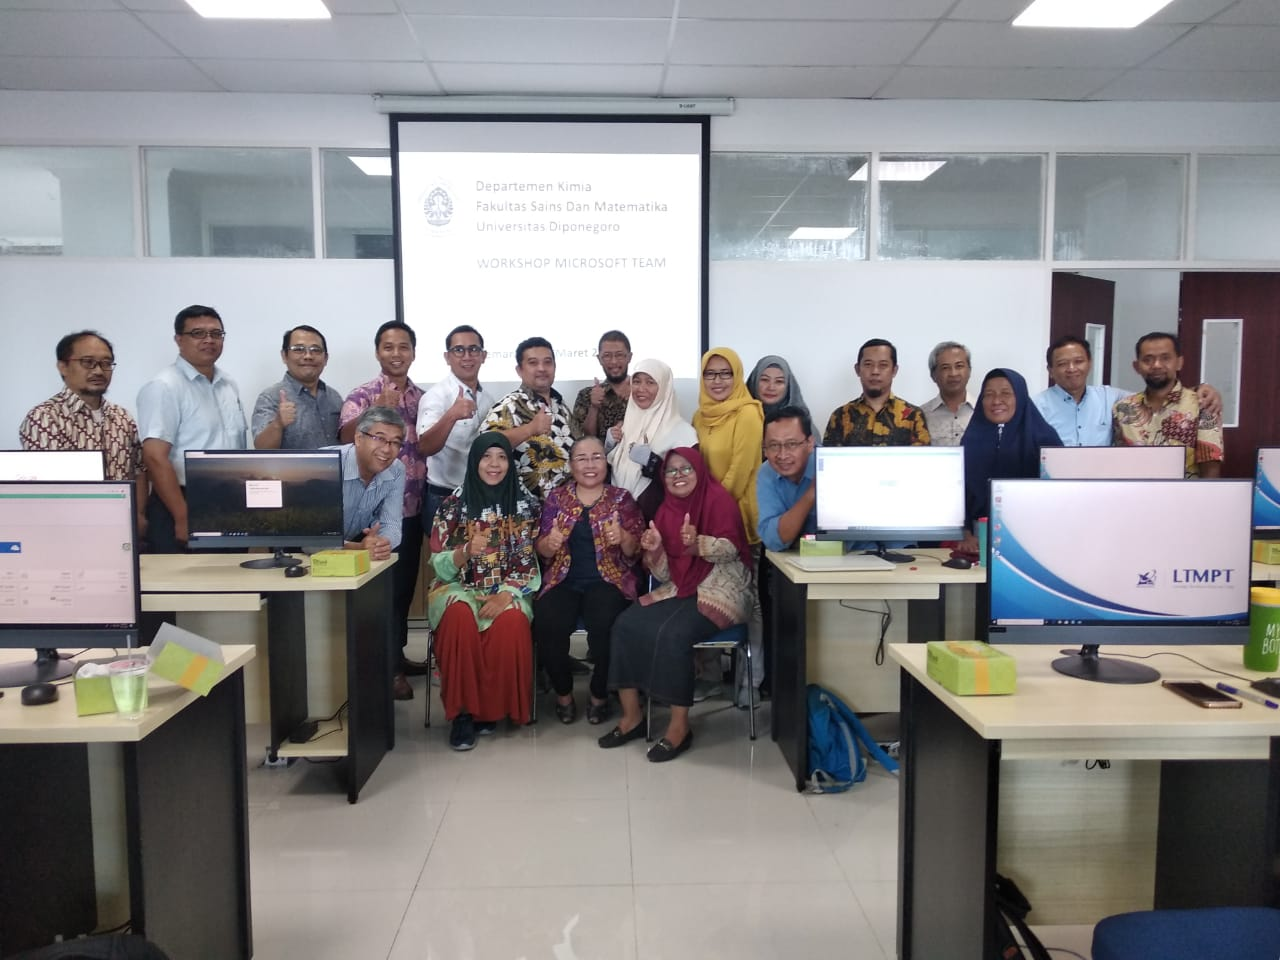 Workshop Microsoft Team oleh Departemen Kimia